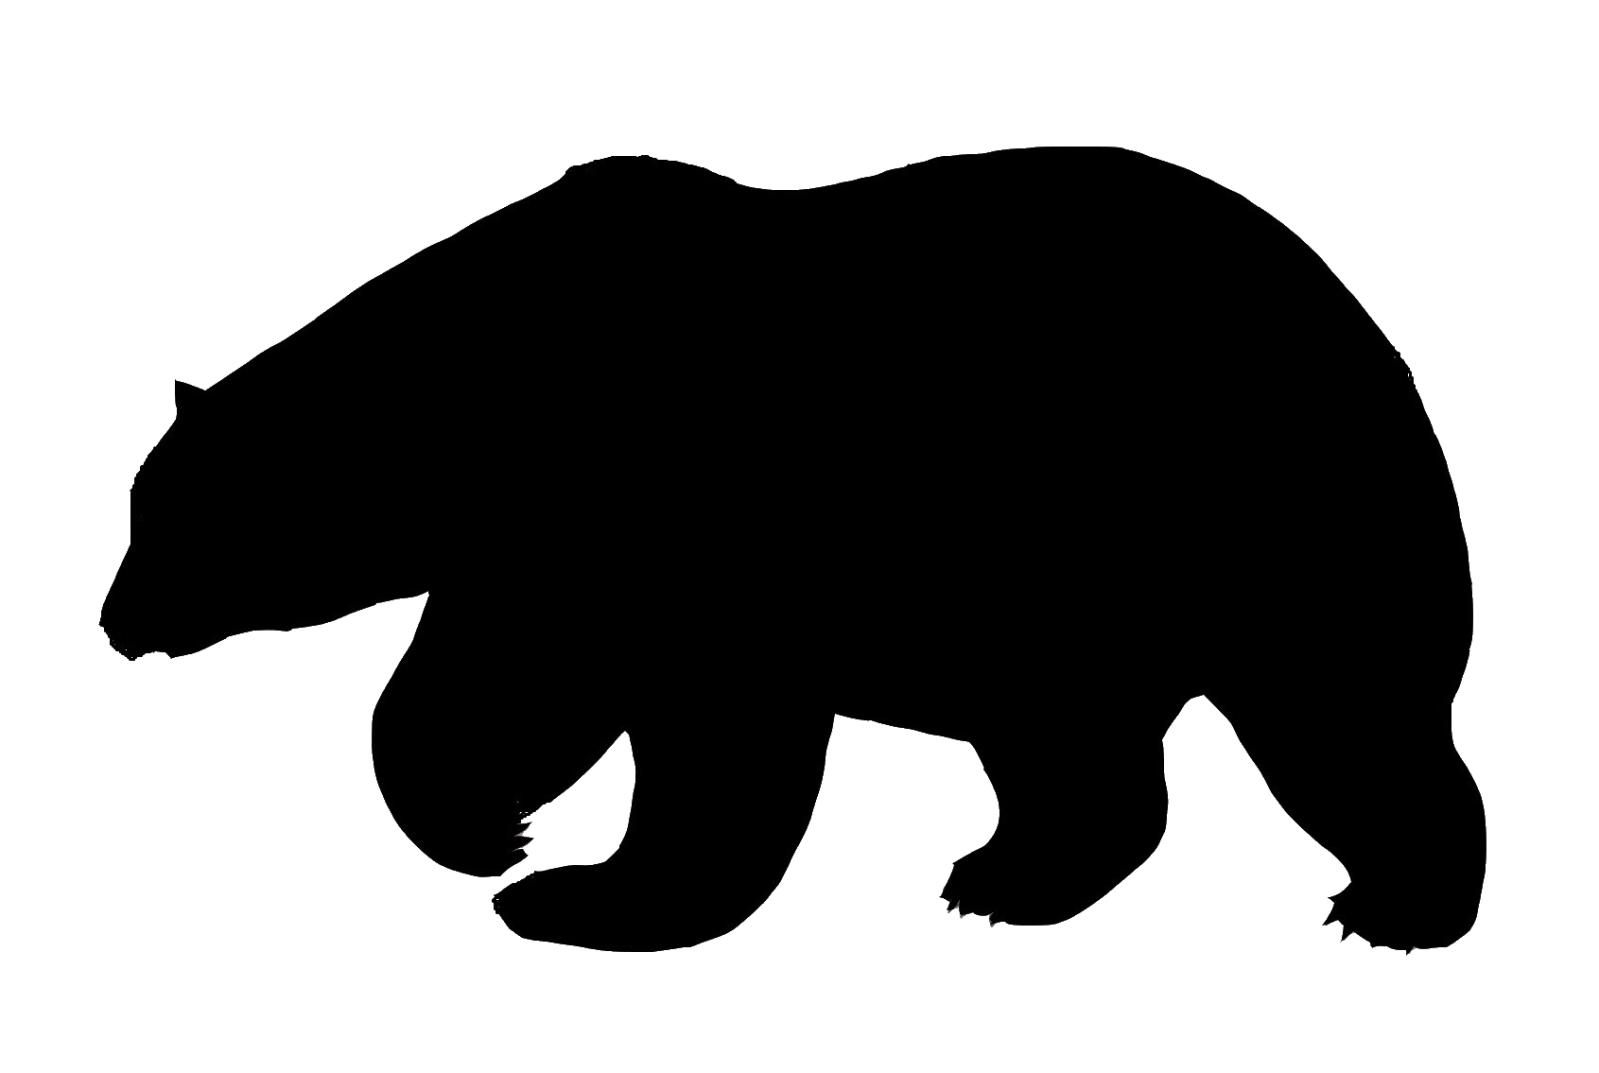 Chic bear outdoor clipart black and white black and white download Polar bear | Polar bears | Bear silhouette, Bear, Silhouette black and white download